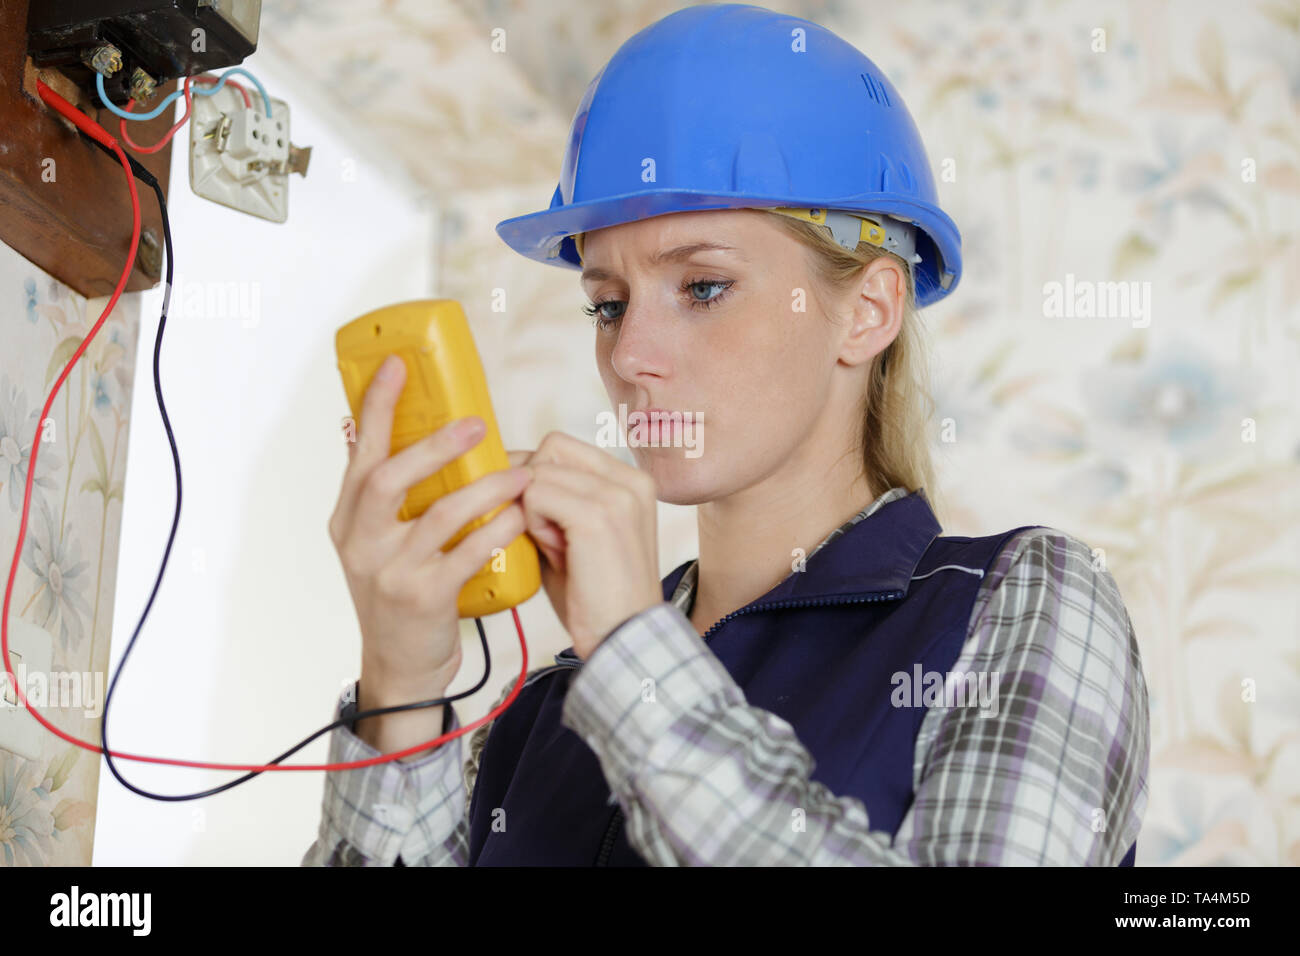 female electrician or engineer check or inspect electrical system - Stock Image